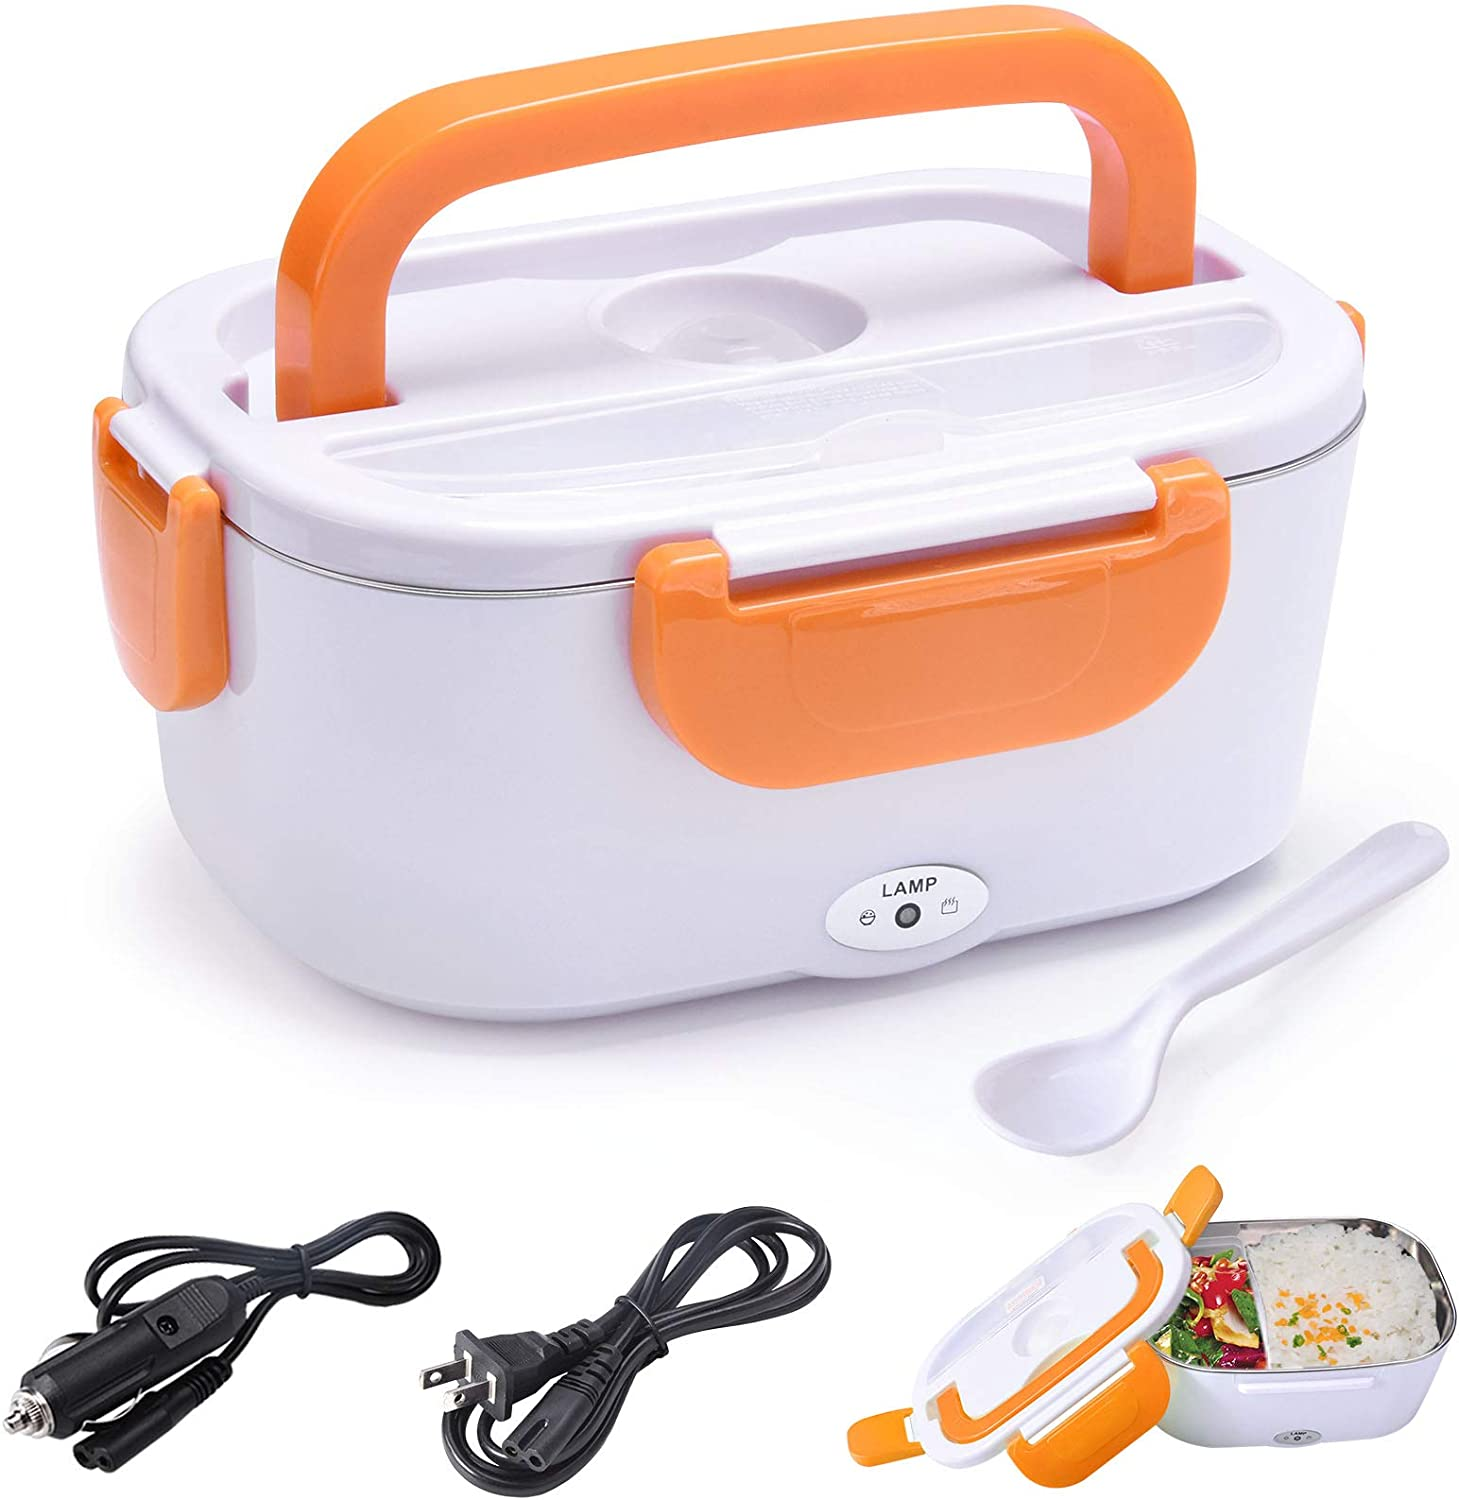 Electric Lunch Box Food Heater Warmer 2 in 1 for Home Office 110V and Car Truck 12V 40W Use Include 1.5L Removable Stainless Steel Container Spoon and 2 Compartments(Orange)